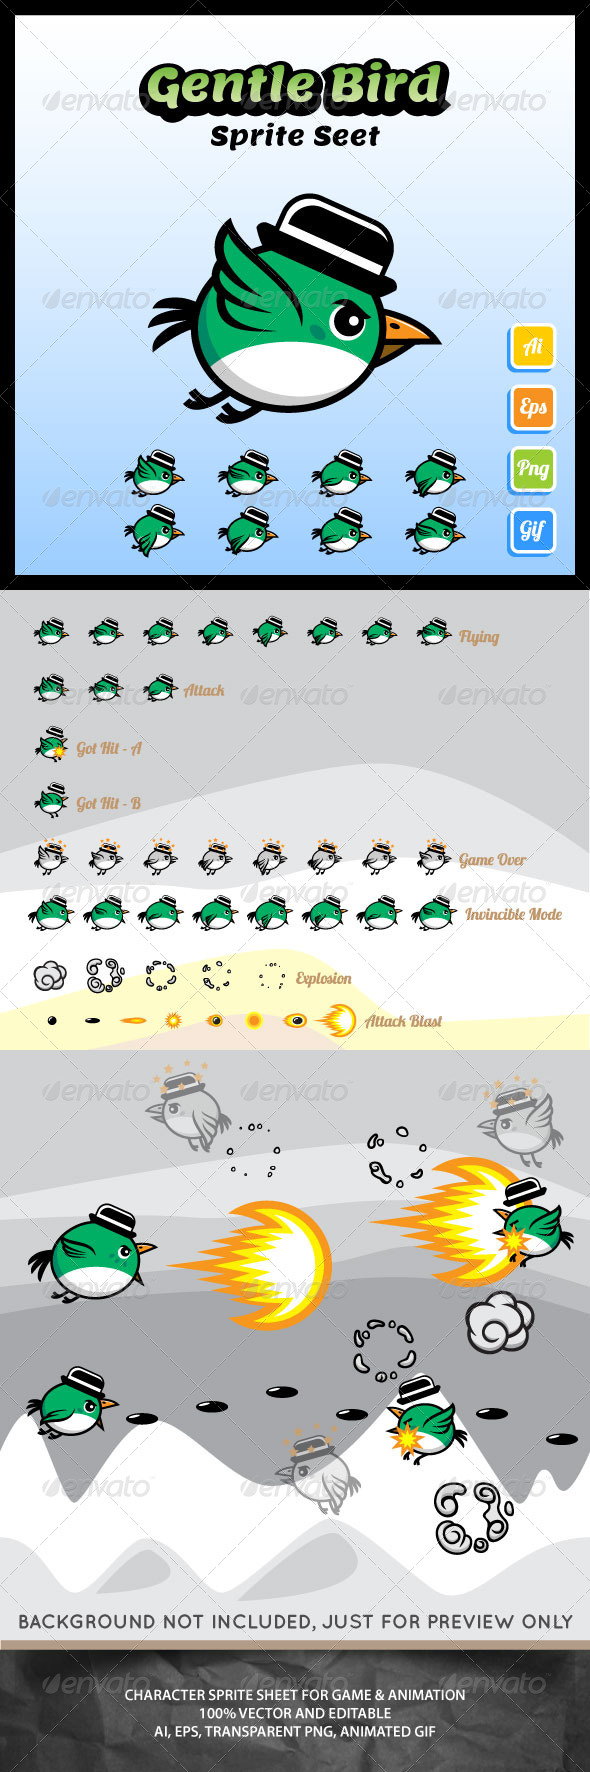 GraphicRiver Gentle Bird Sprite Sheet 7157667